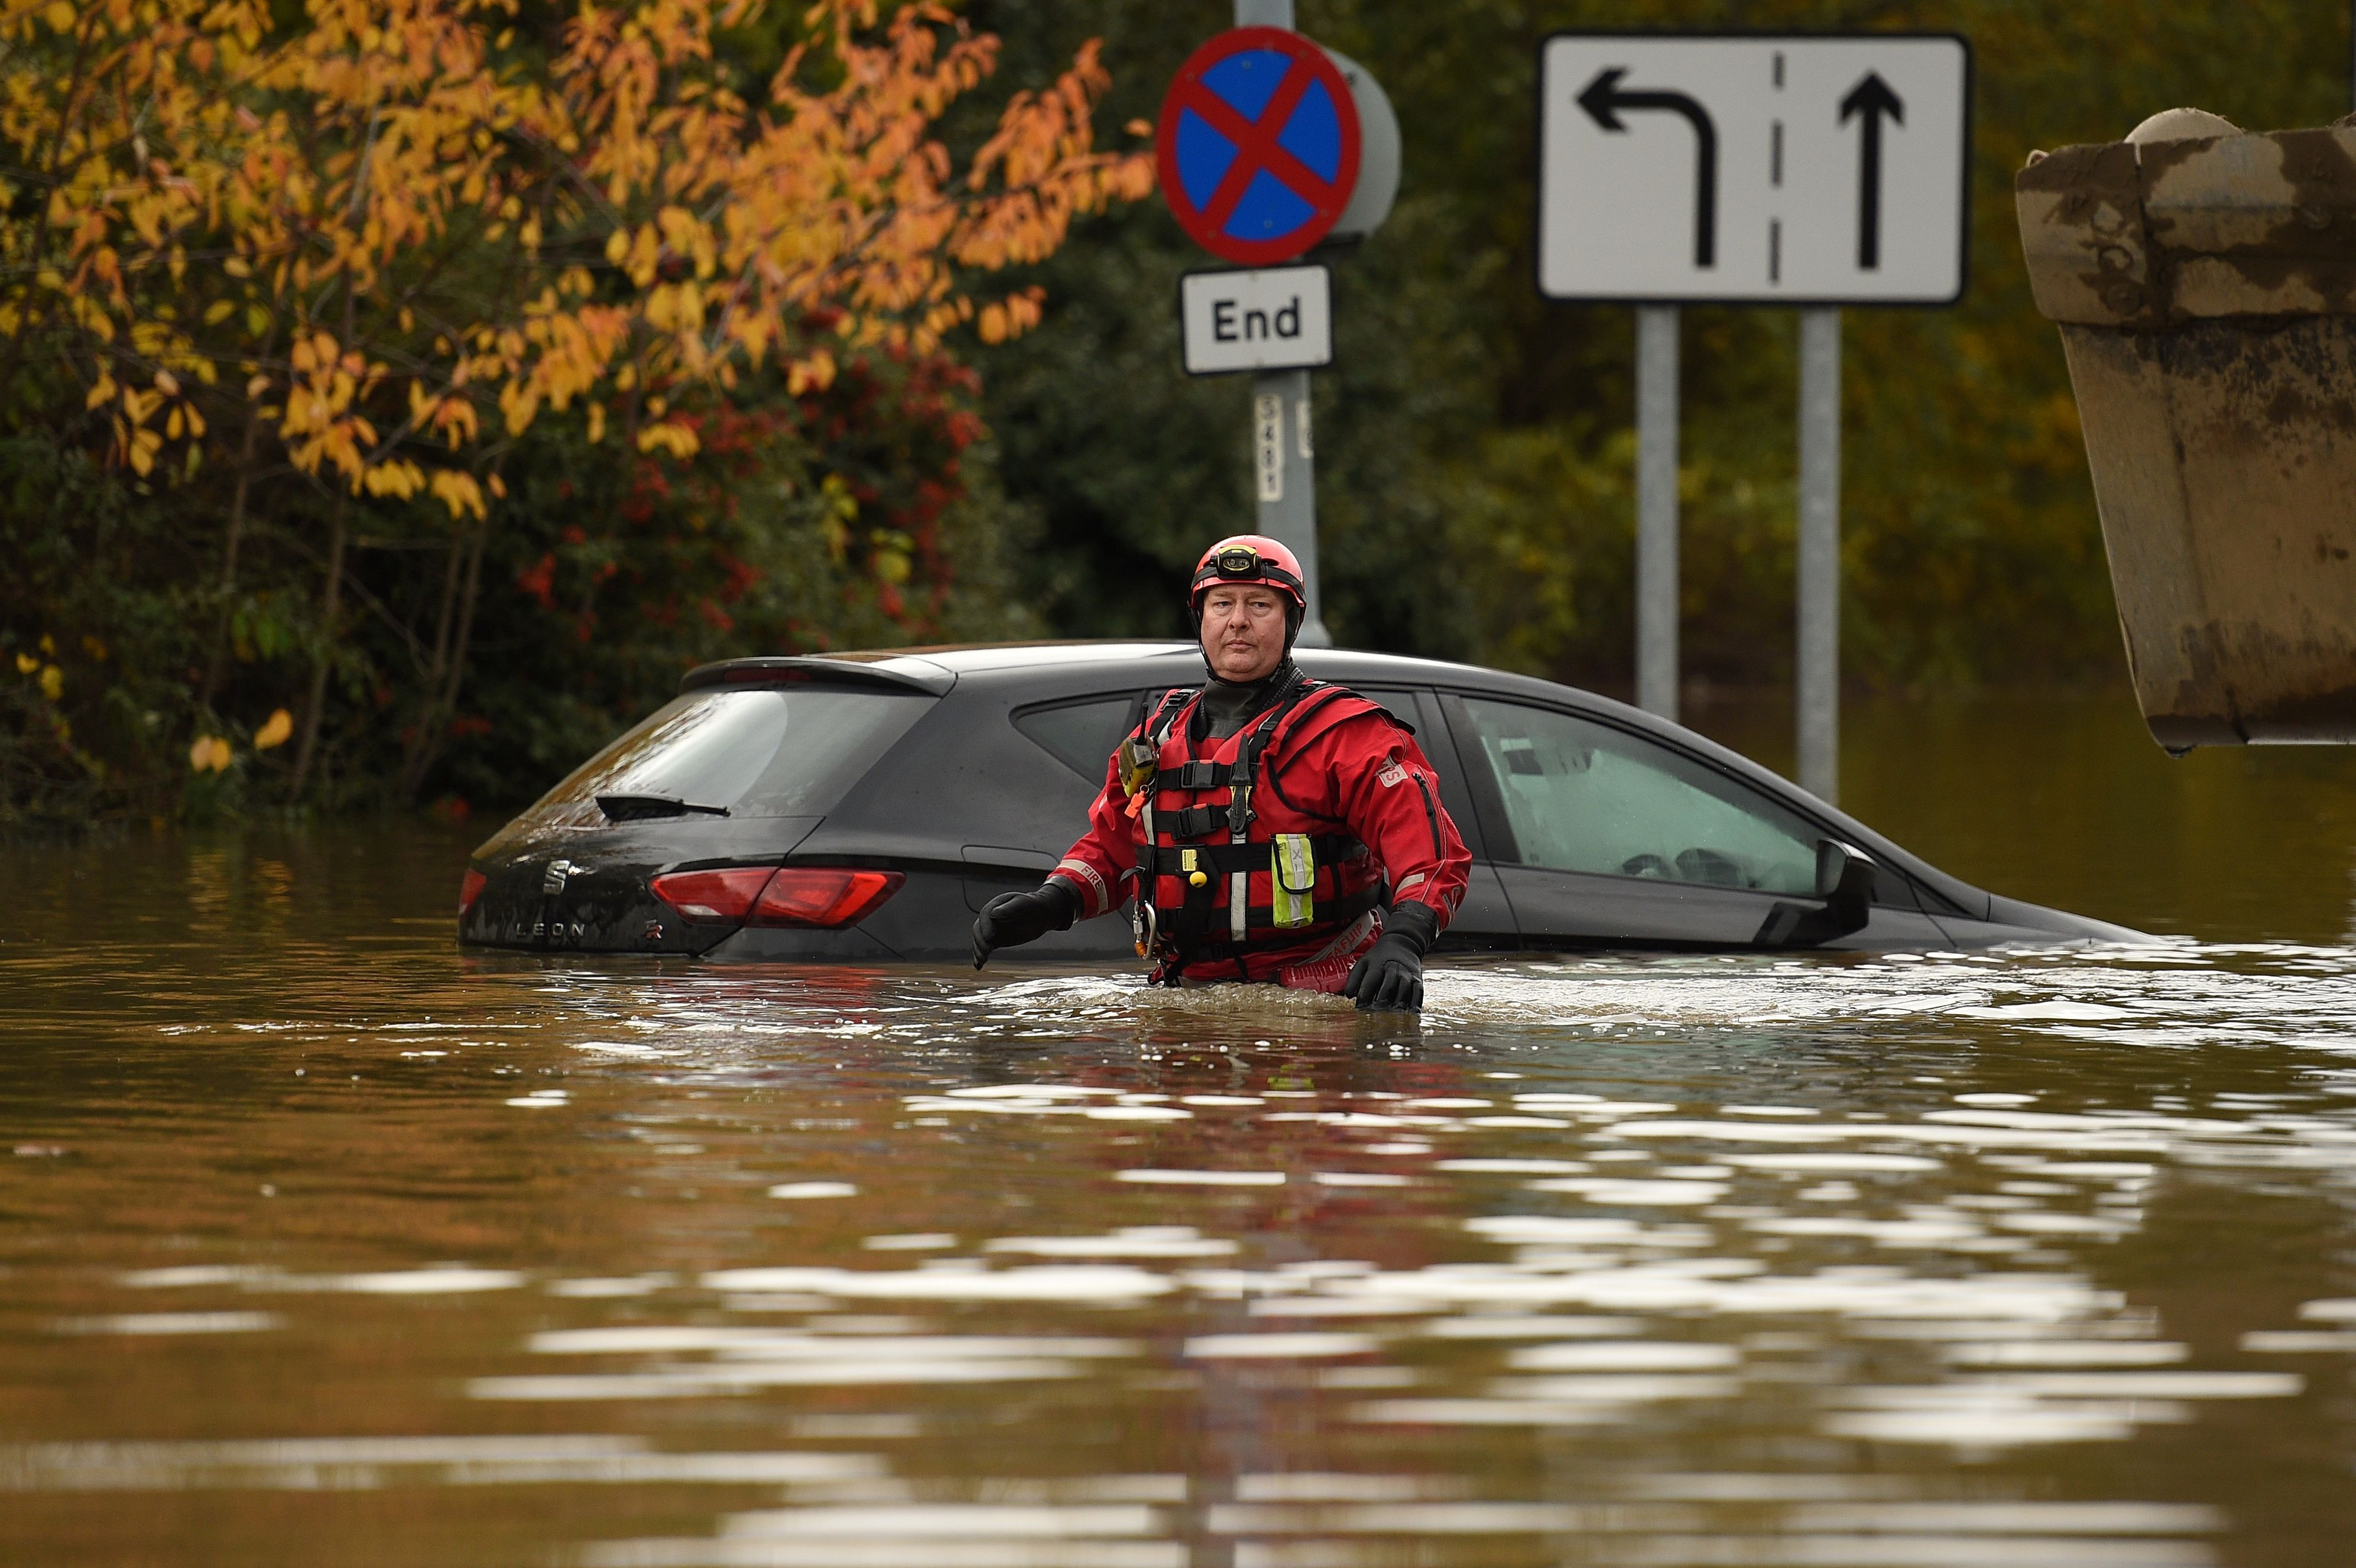 A firefighter battles his way through flood water near an abandoned car in Rotherham